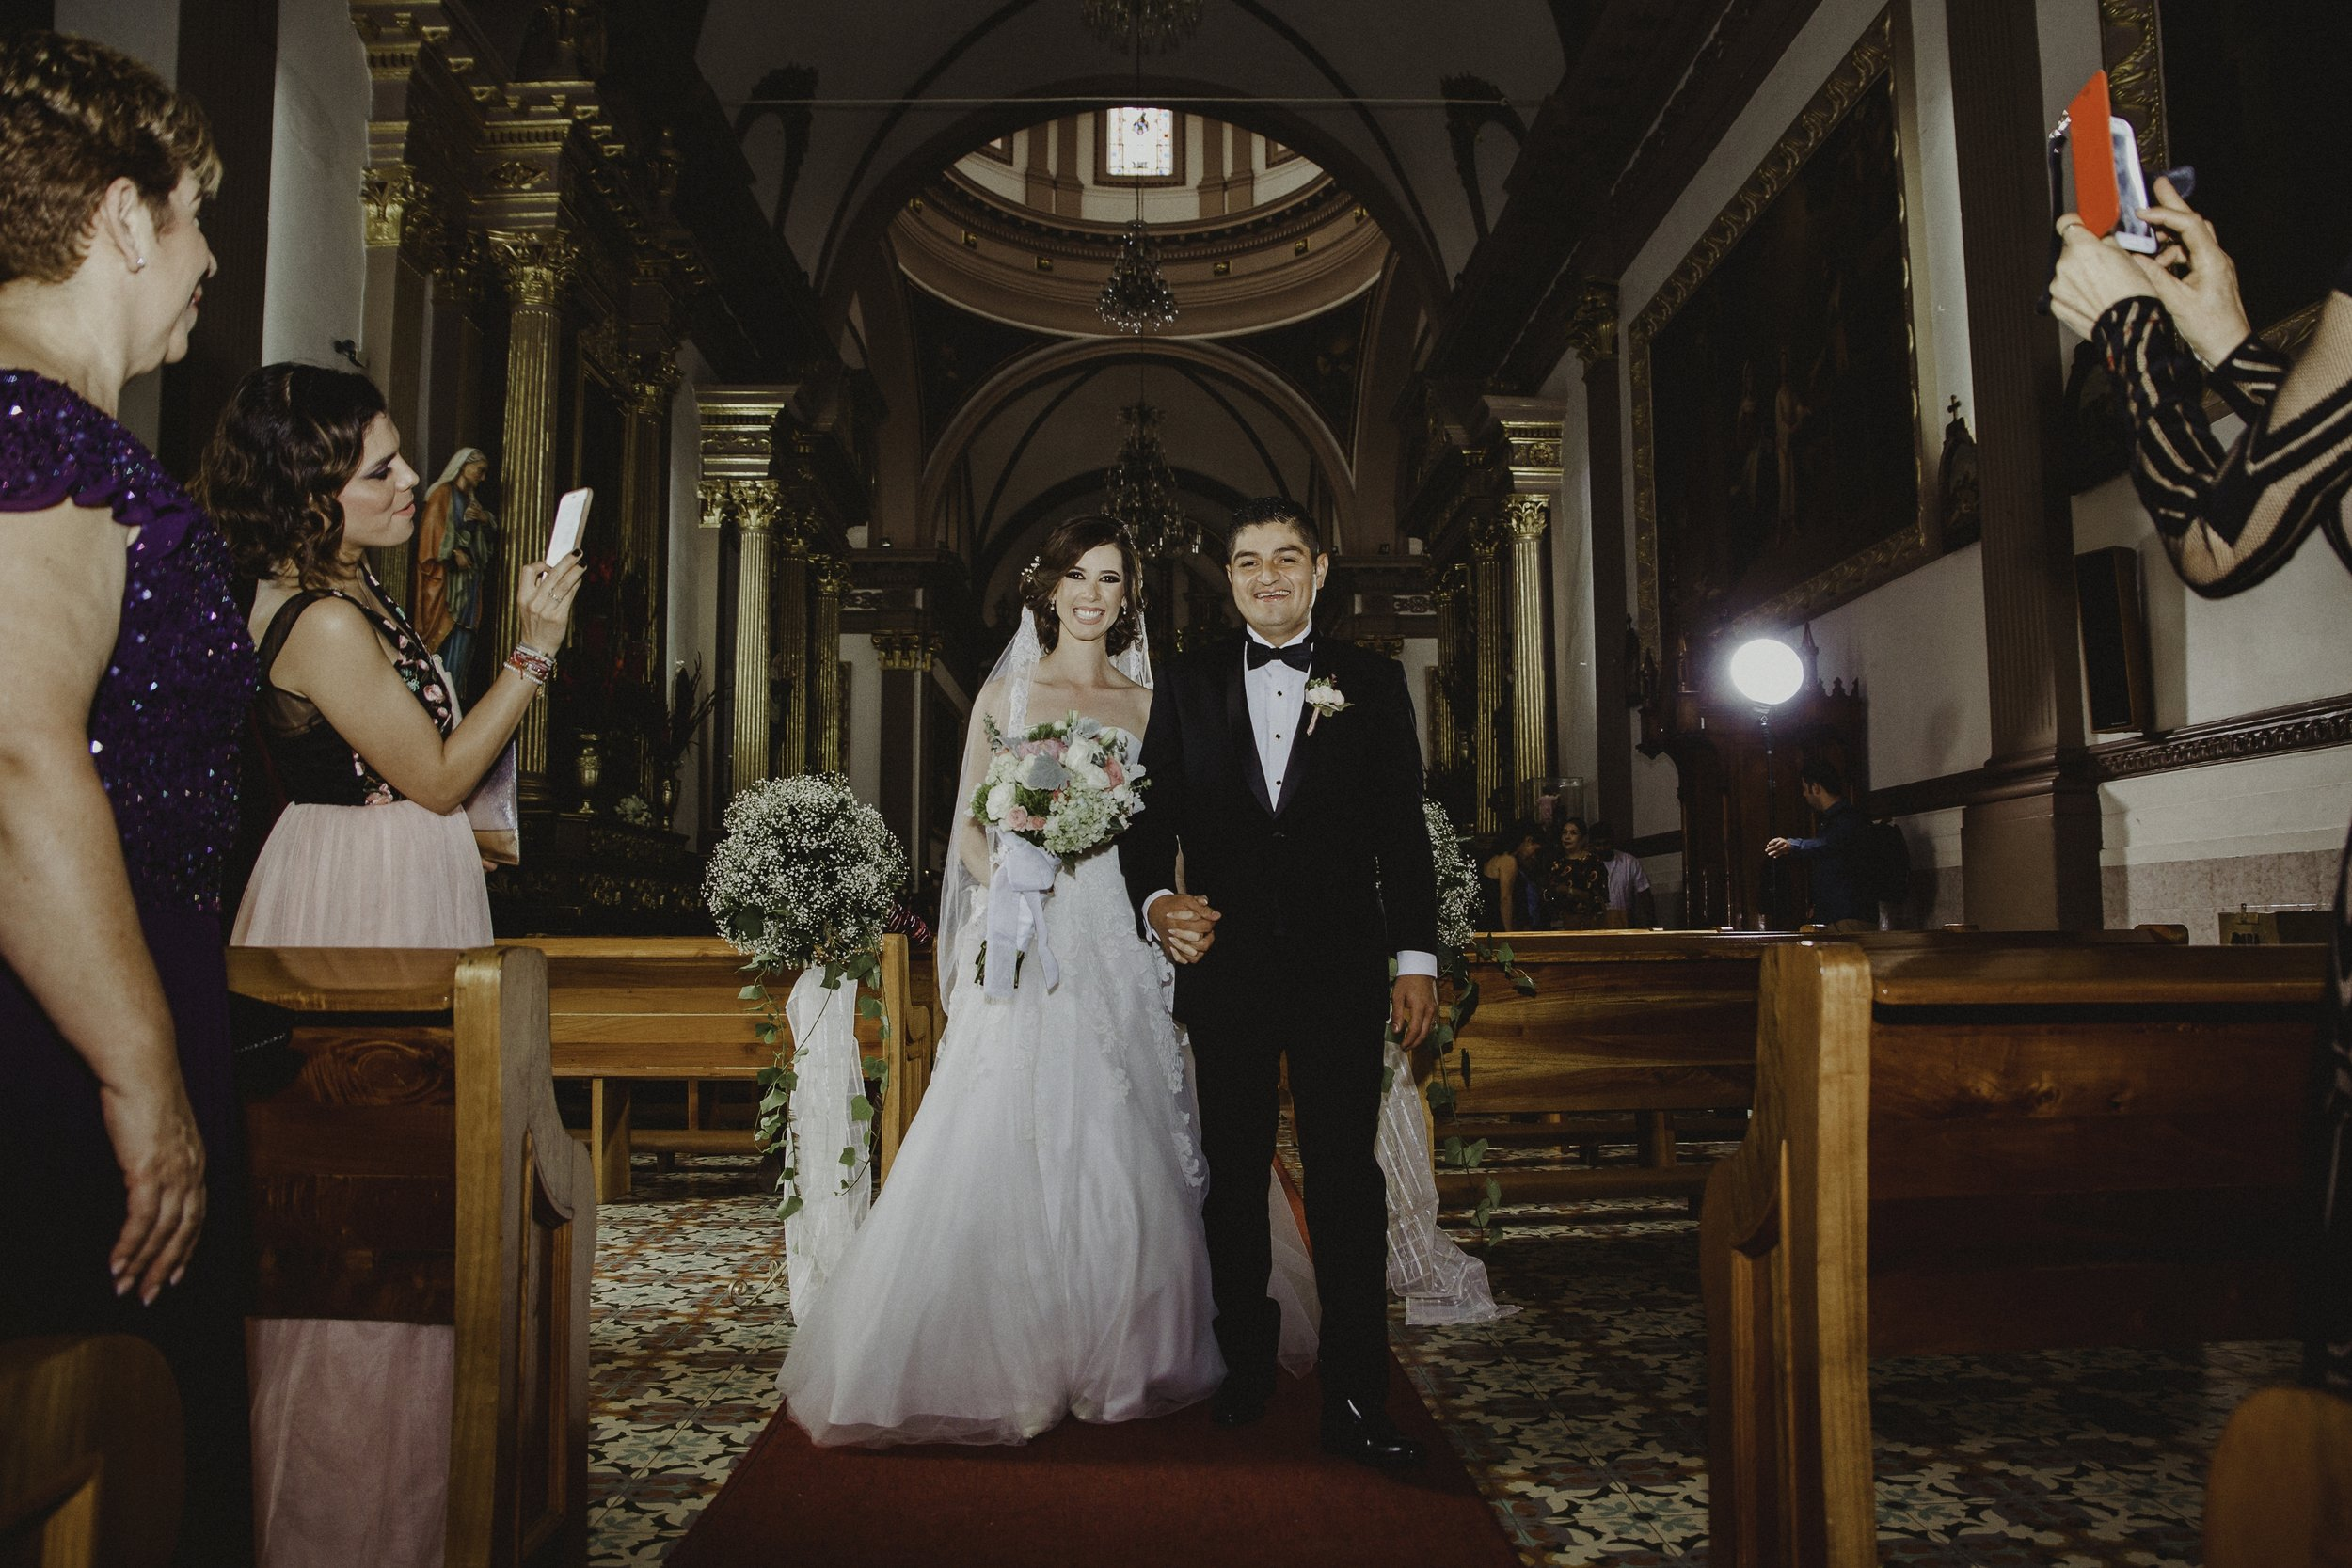 ODEMARIS_DANIEL-75carotida_photographer_boda_wedding.jpg